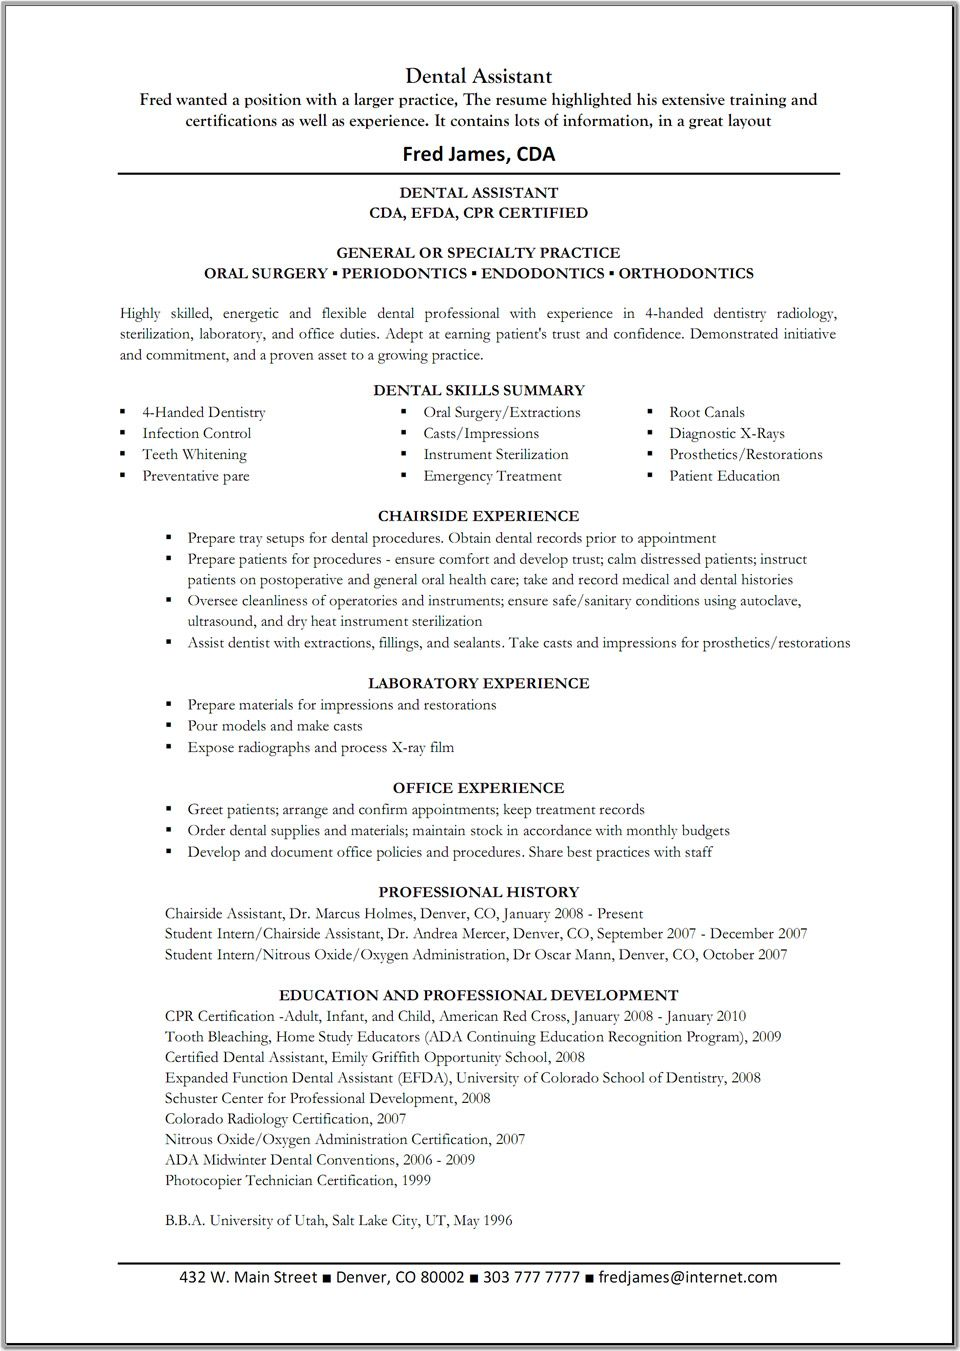 Resume Resume Format Dentist Job dental assistant resume template great templates templates